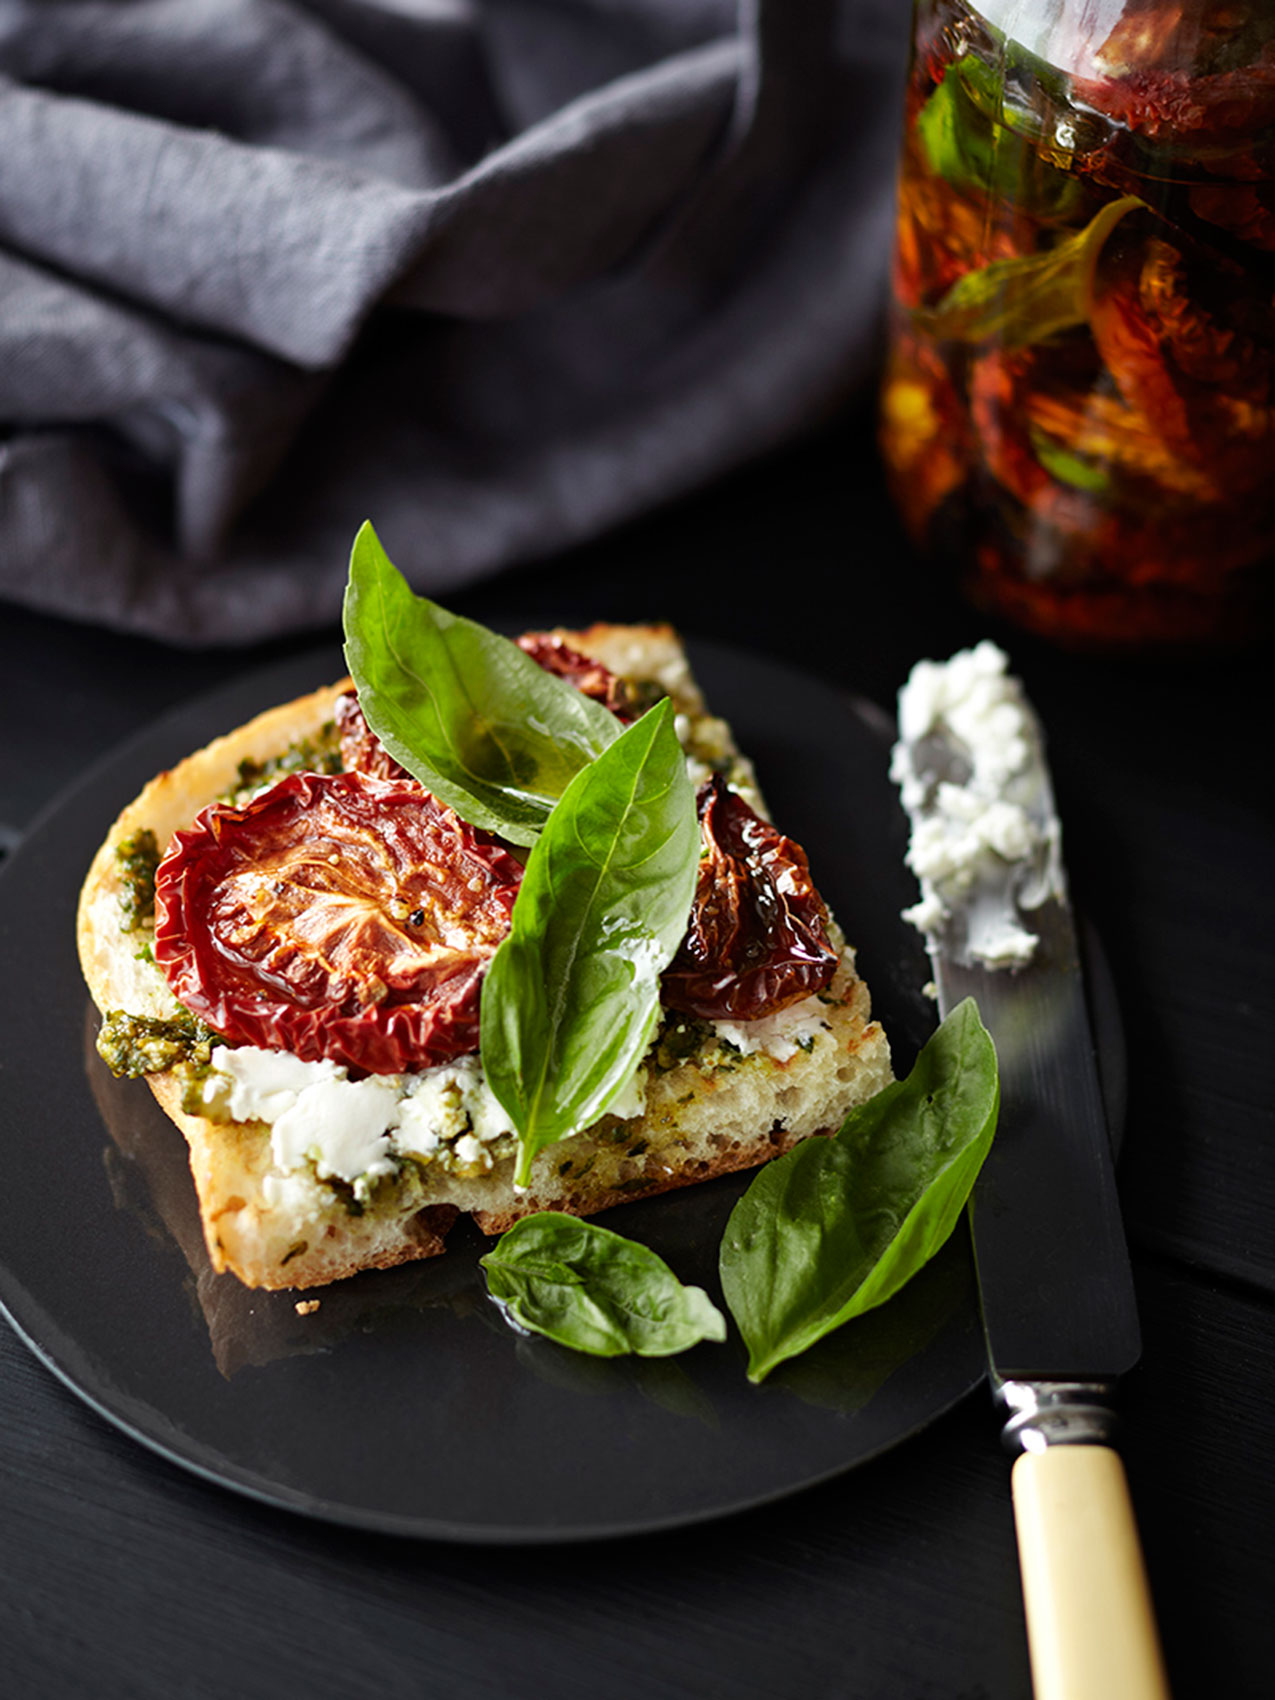 Sundried Tomato Toast with Basil – Creative Food Photography